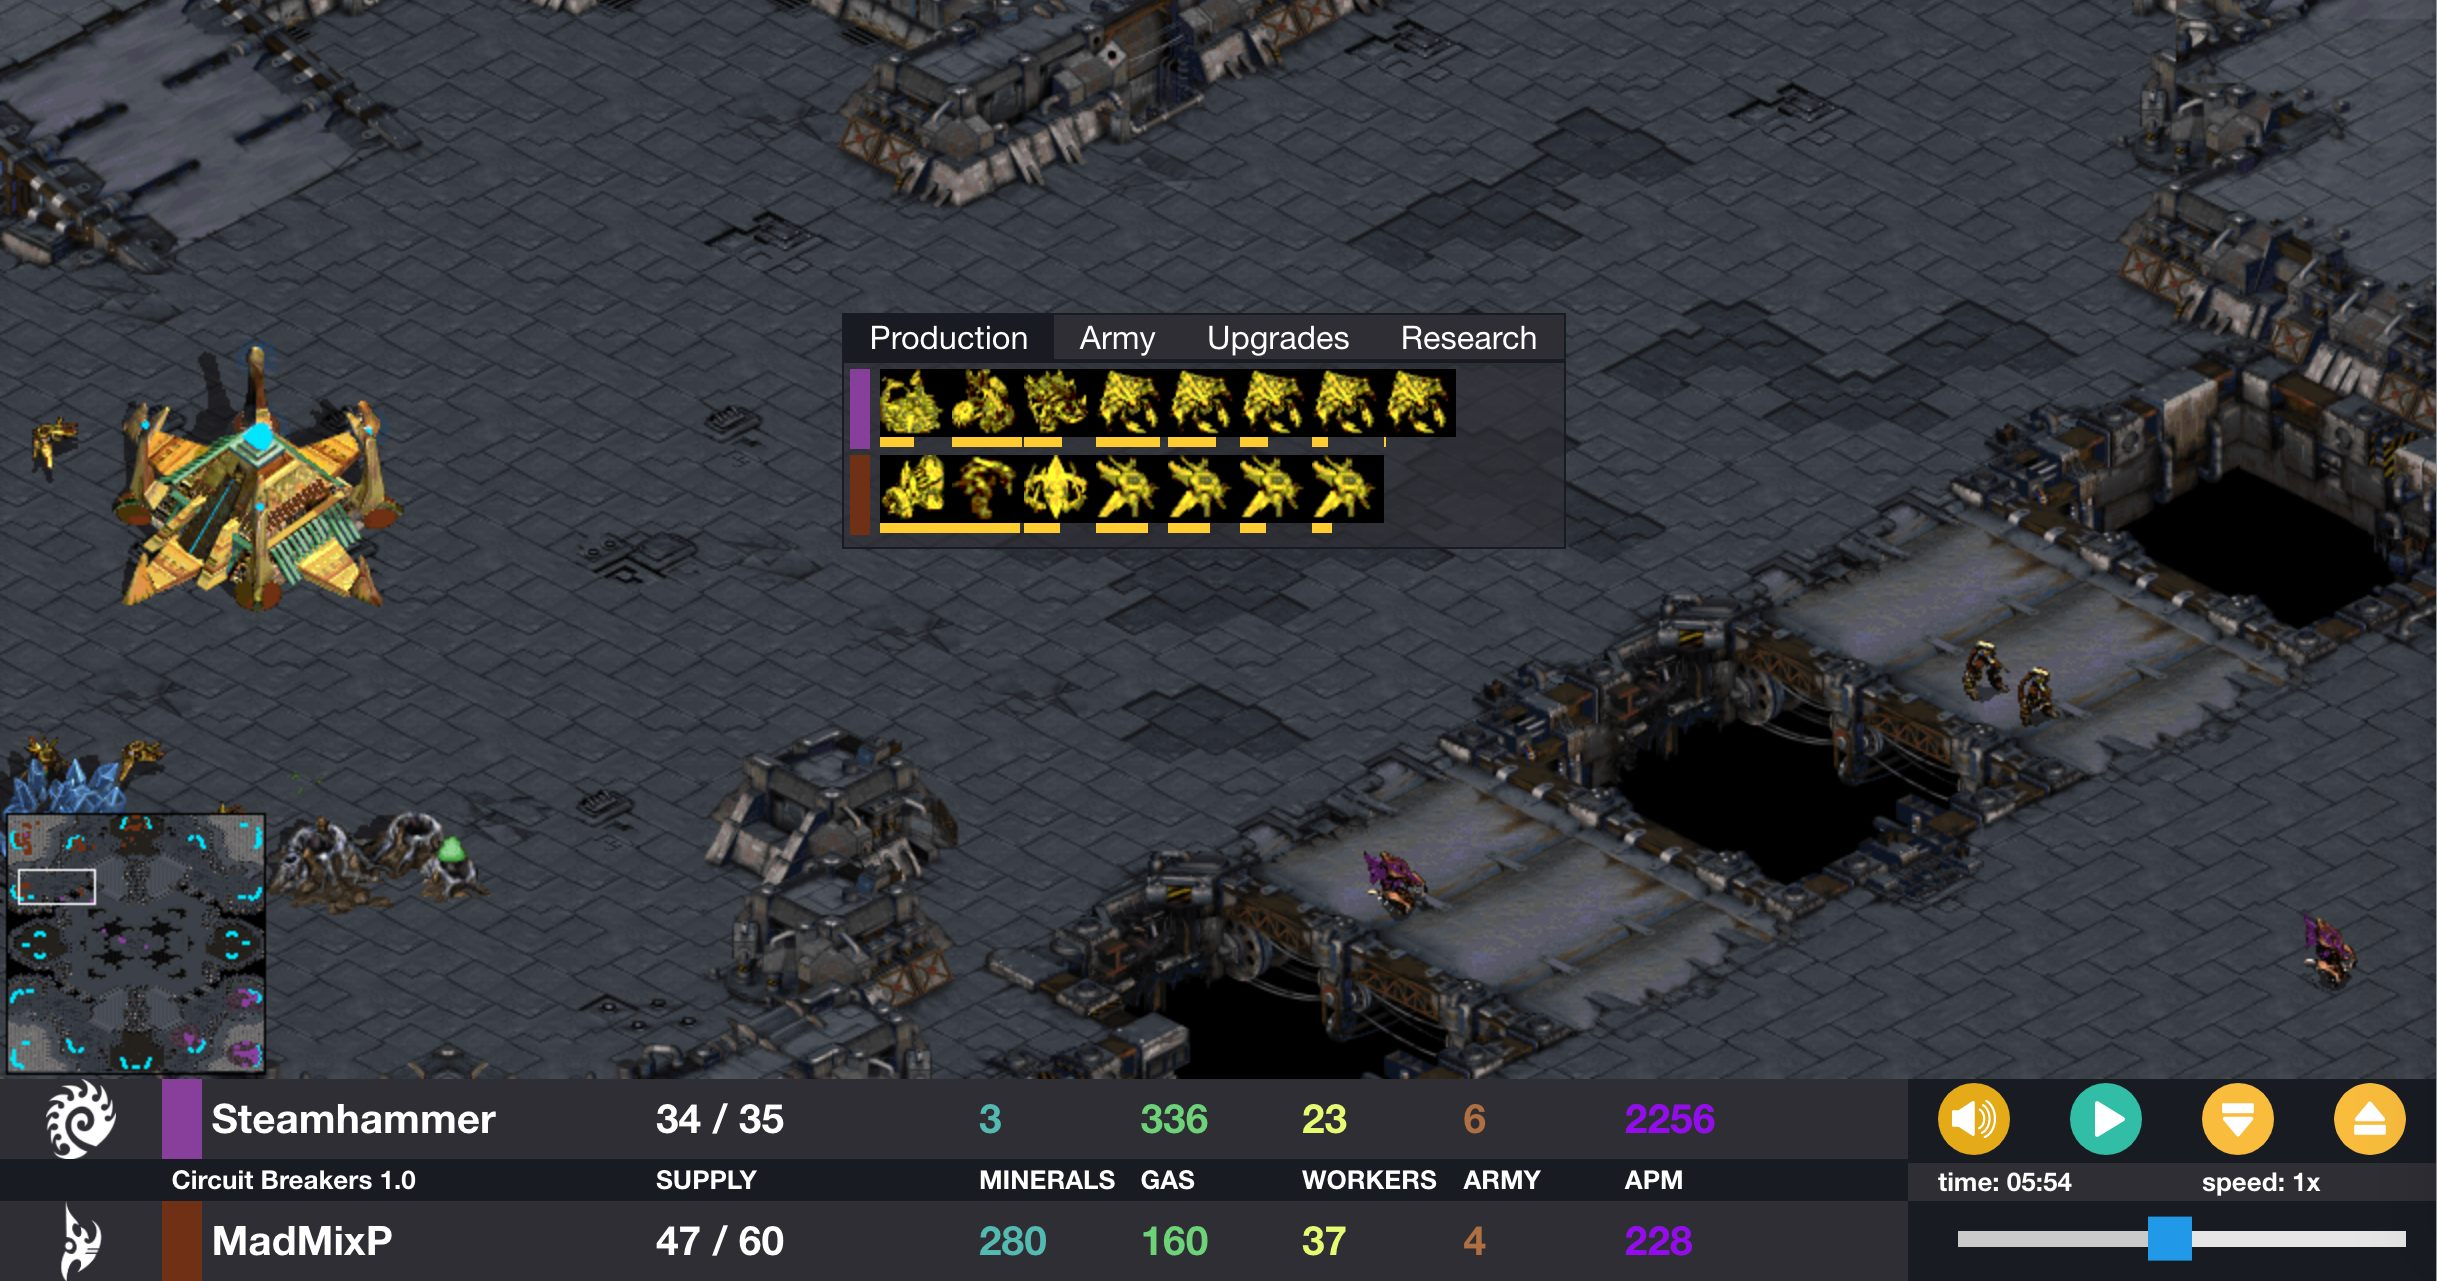 Entertaining Steamhammer Game Starcraft Ai Blog From Entering The Circuit Ahead Of Its Path Breakers Are Used Wants More Drones